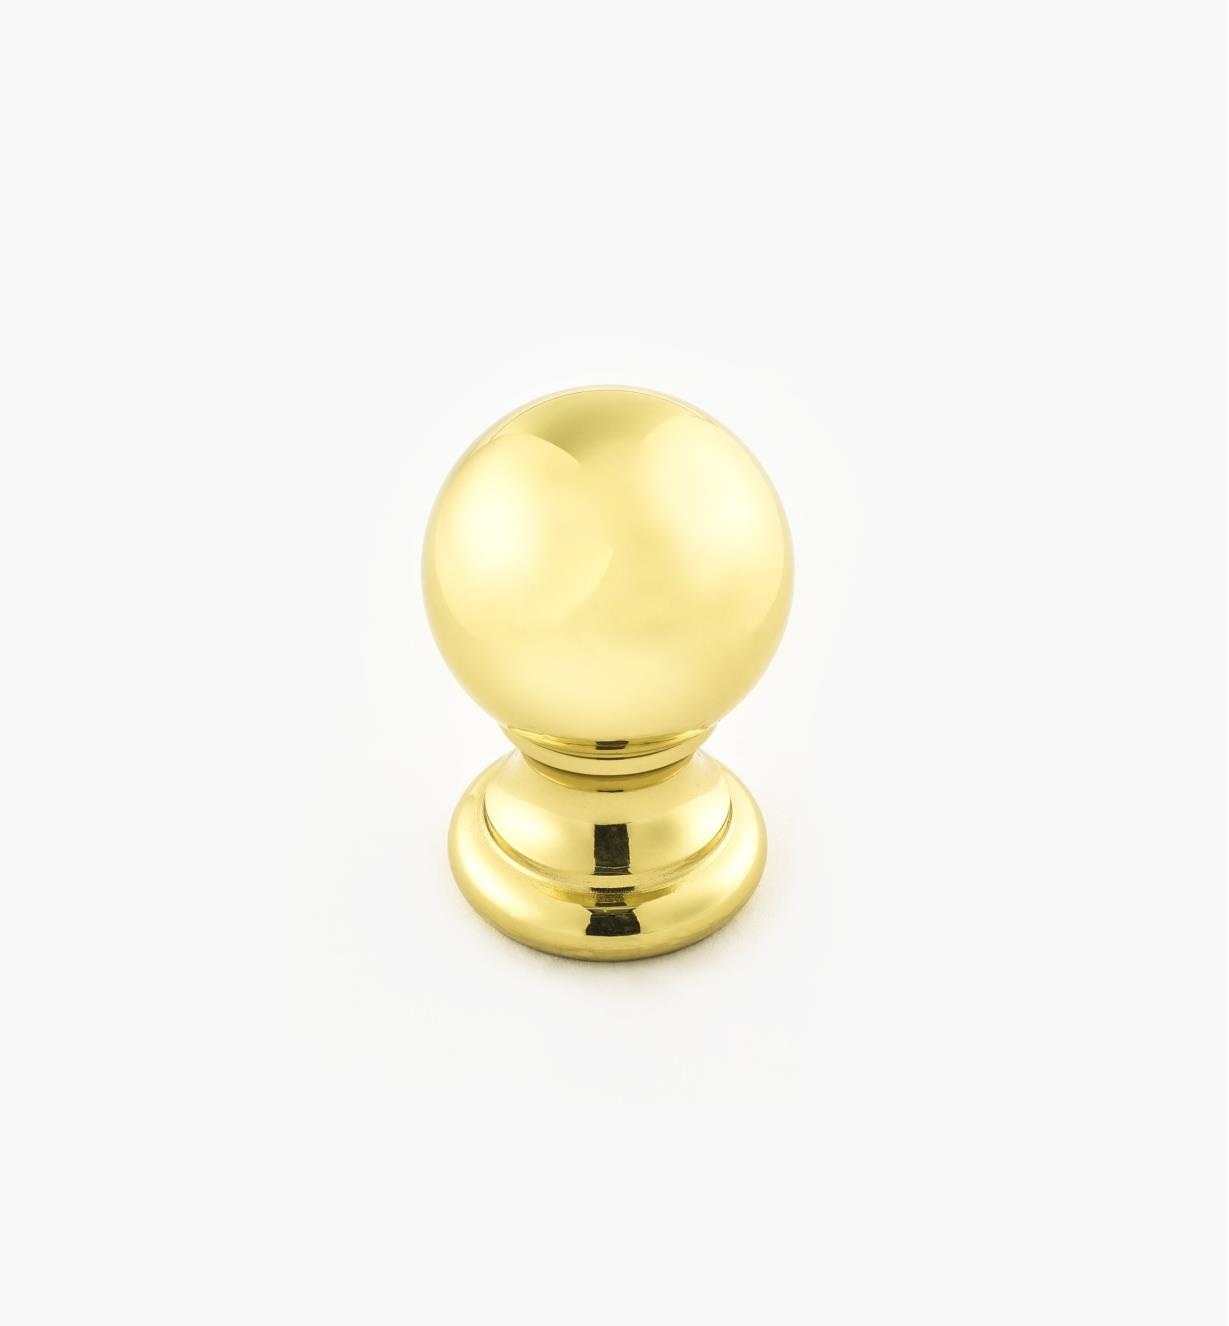 "02W3203 - Polished Brass Suite - 7/8"" x 1 1/4"" Turned Brass Ball Knob"